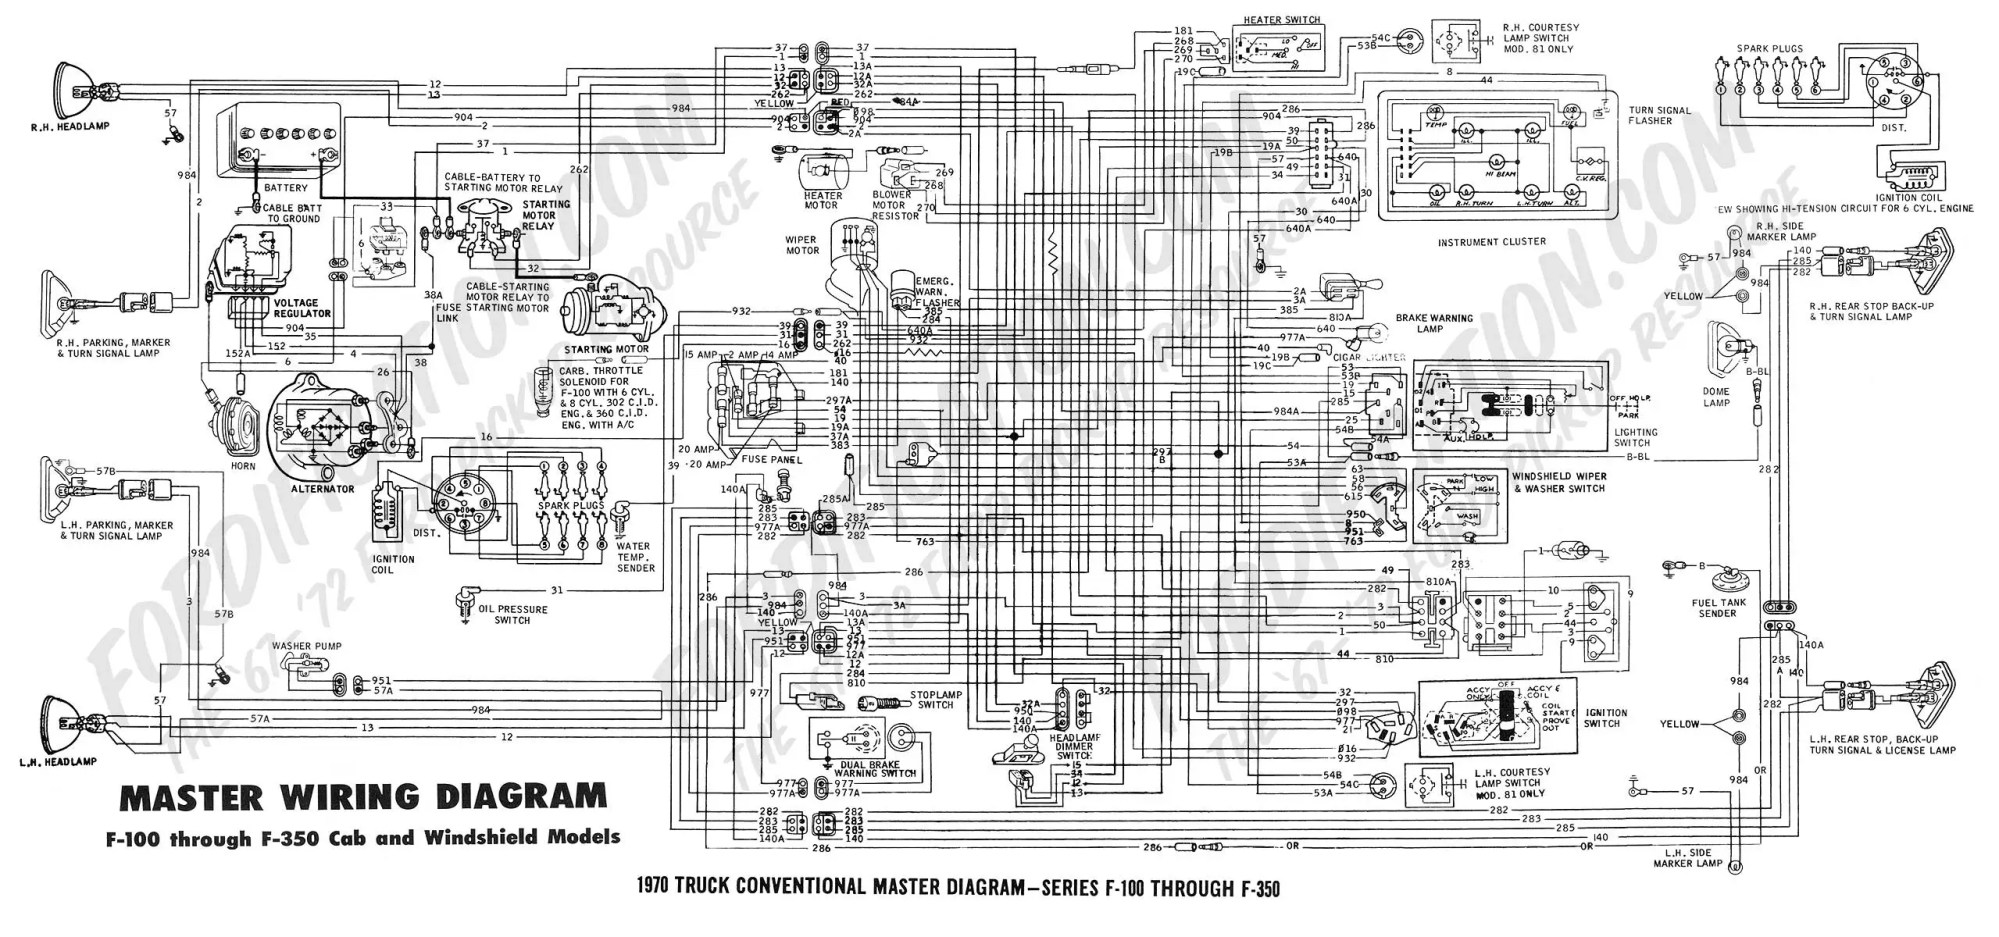 hight resolution of 2003 ford f250 wiring diagram wiring diagrams wiring diagram for 2000 ford f250 alternator wiring diagram for 2003 ford f250